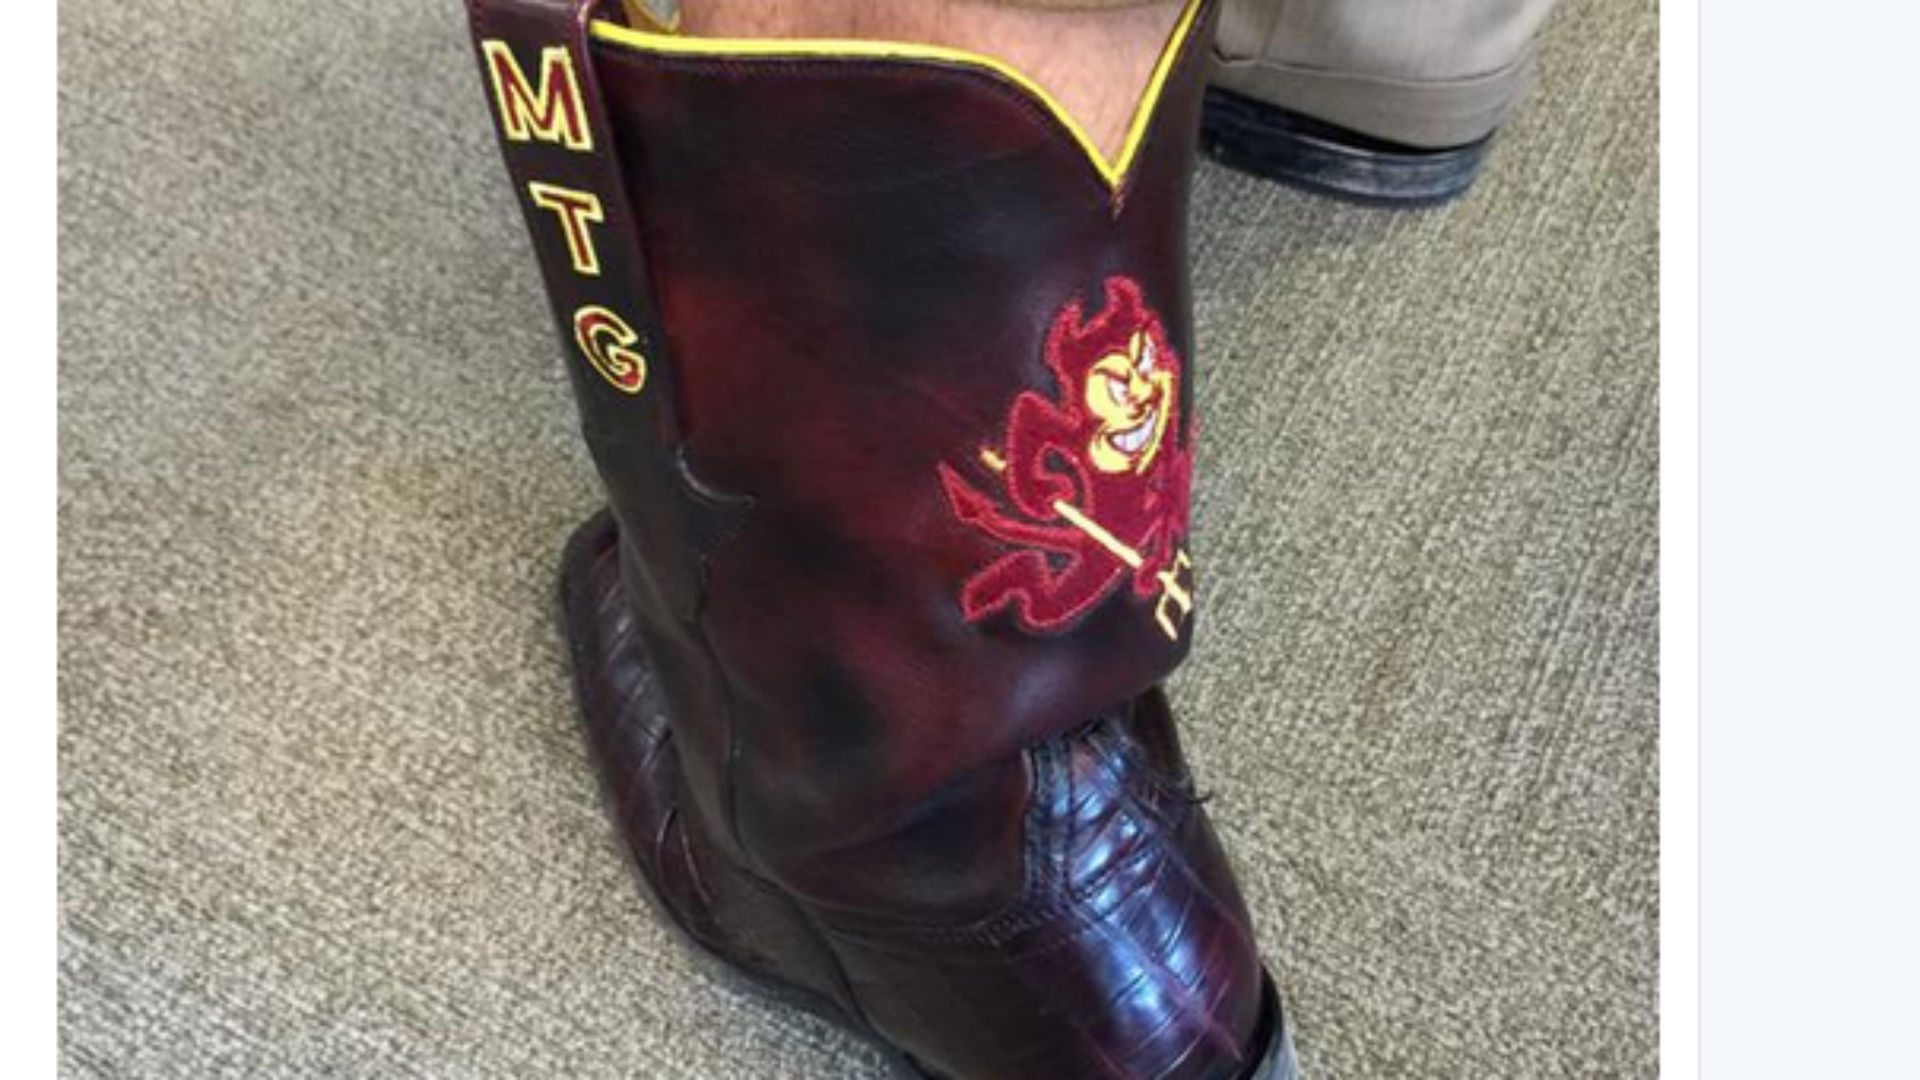 Todd Graham's boots are made for showing off